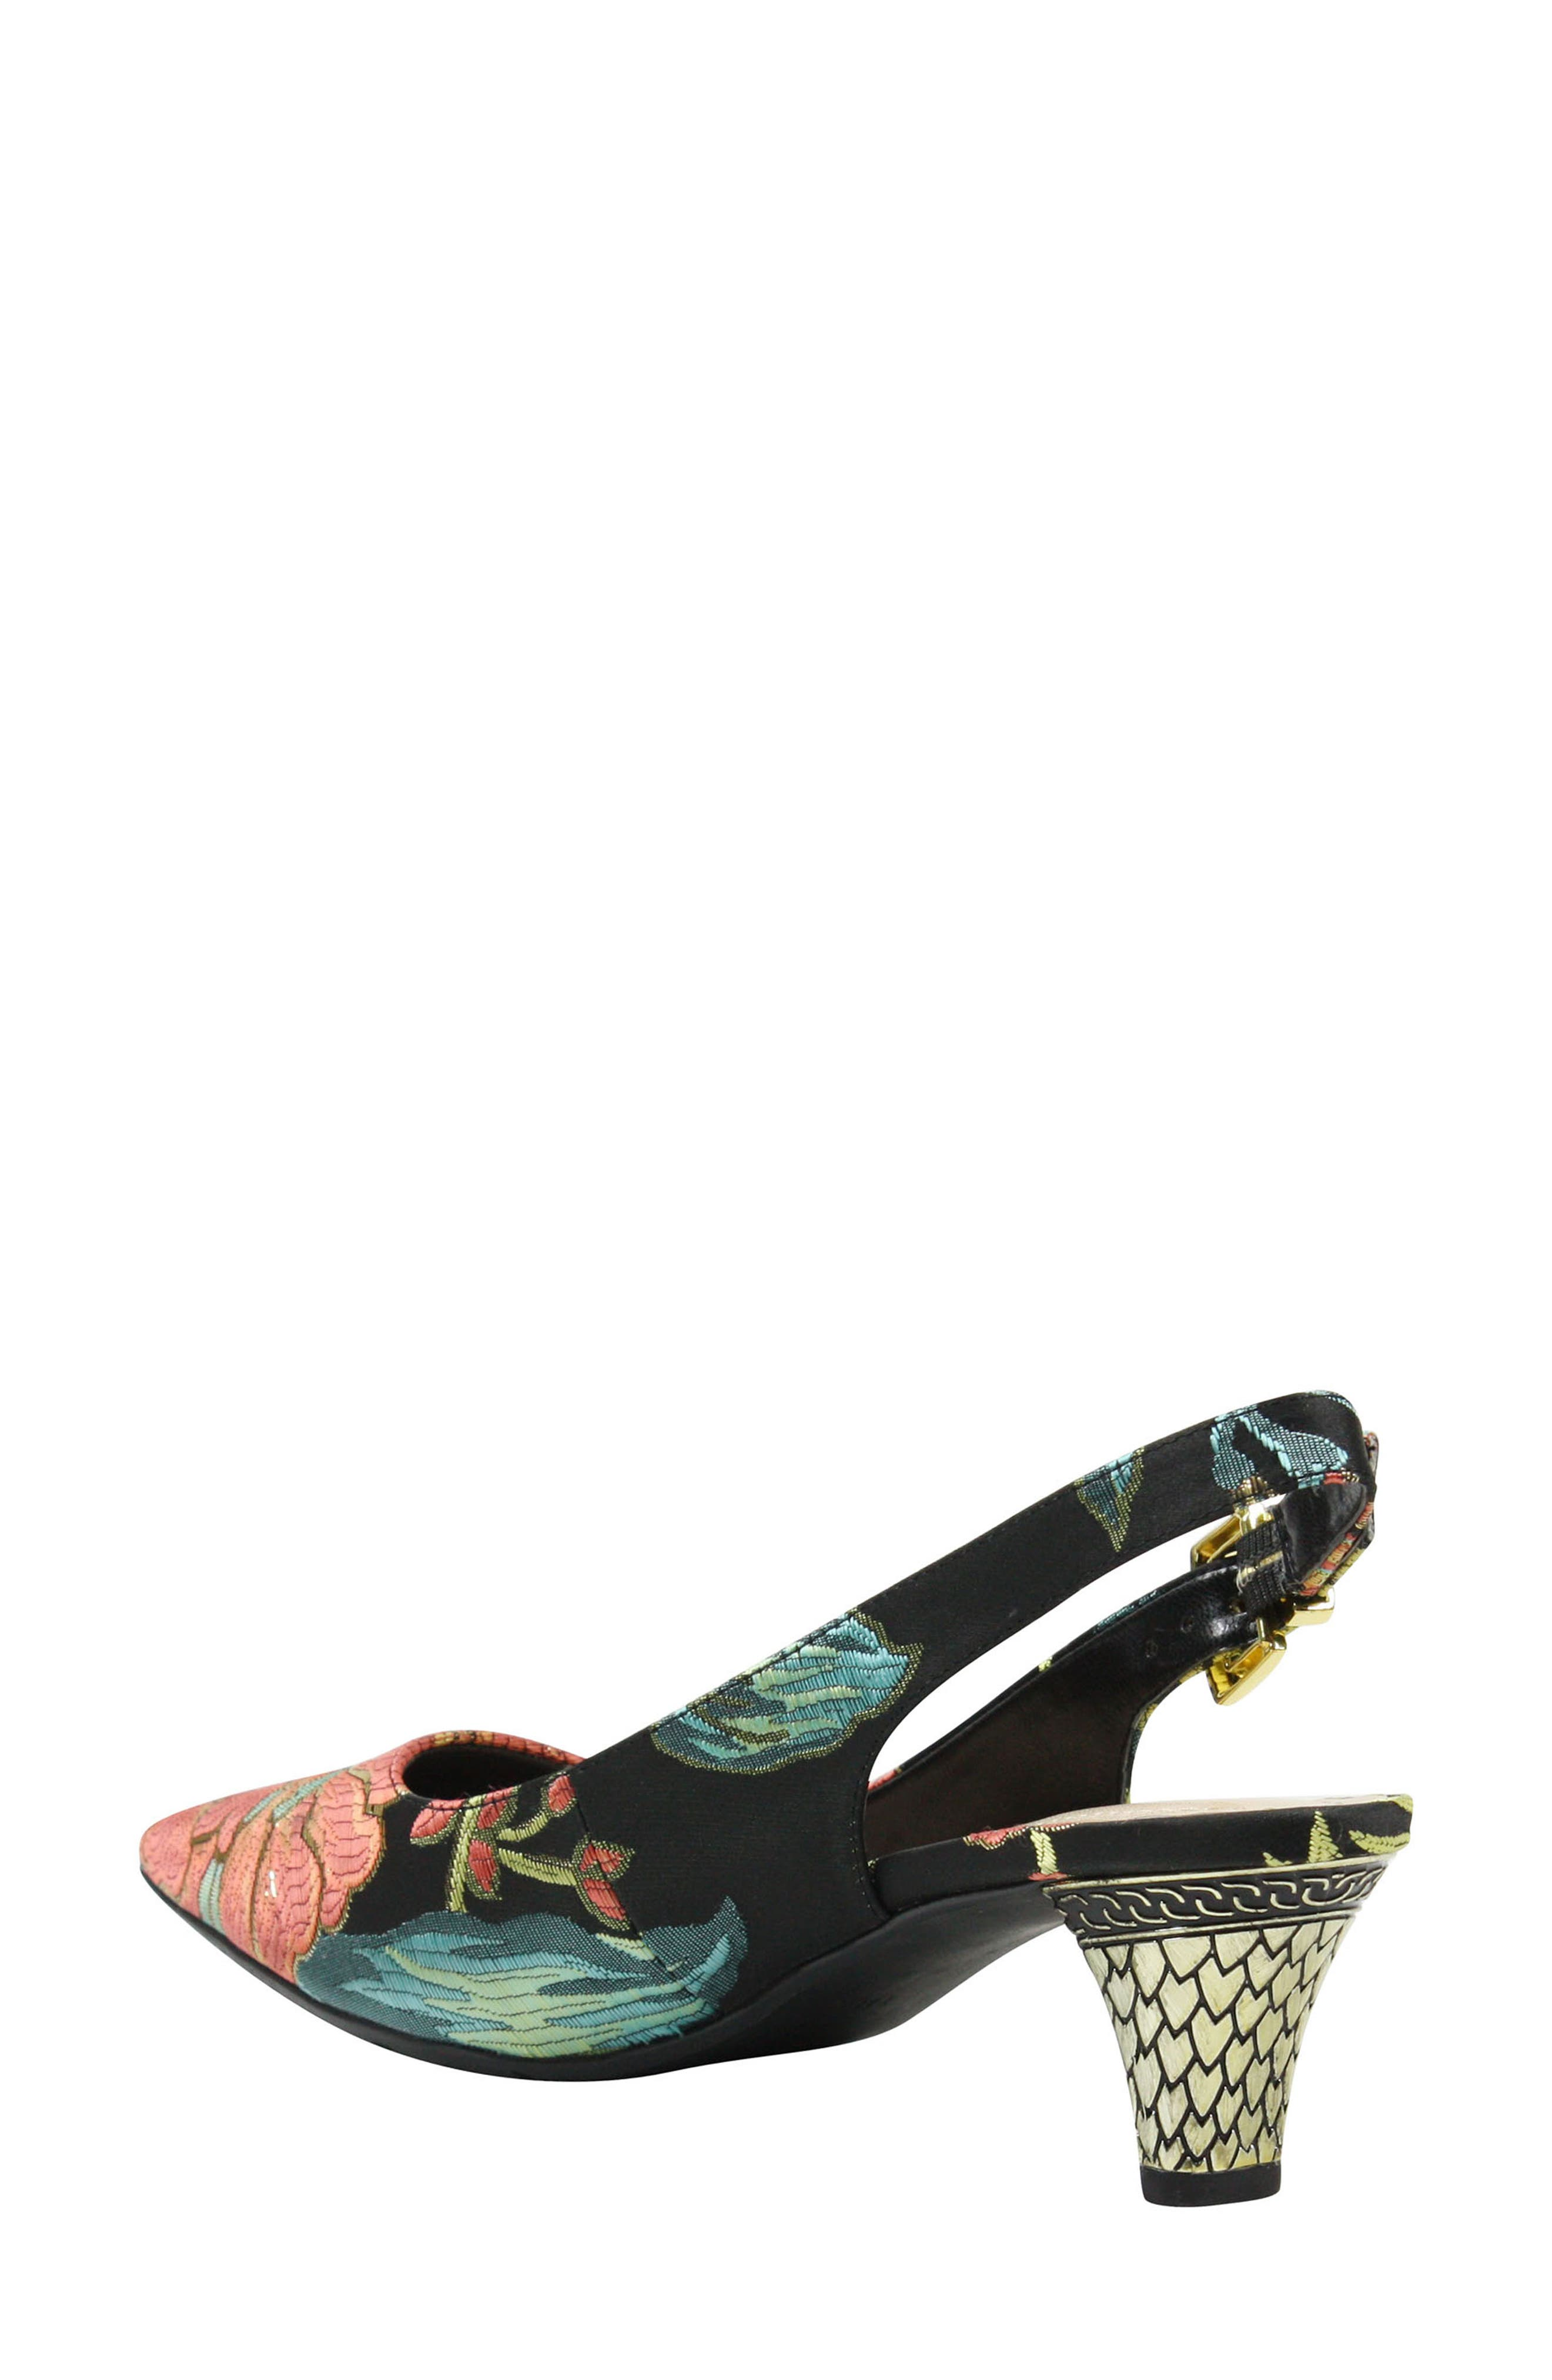 Mayetta Slingback Pump,                             Alternate thumbnail 2, color,                             Black/ Teal/ Coral Multi